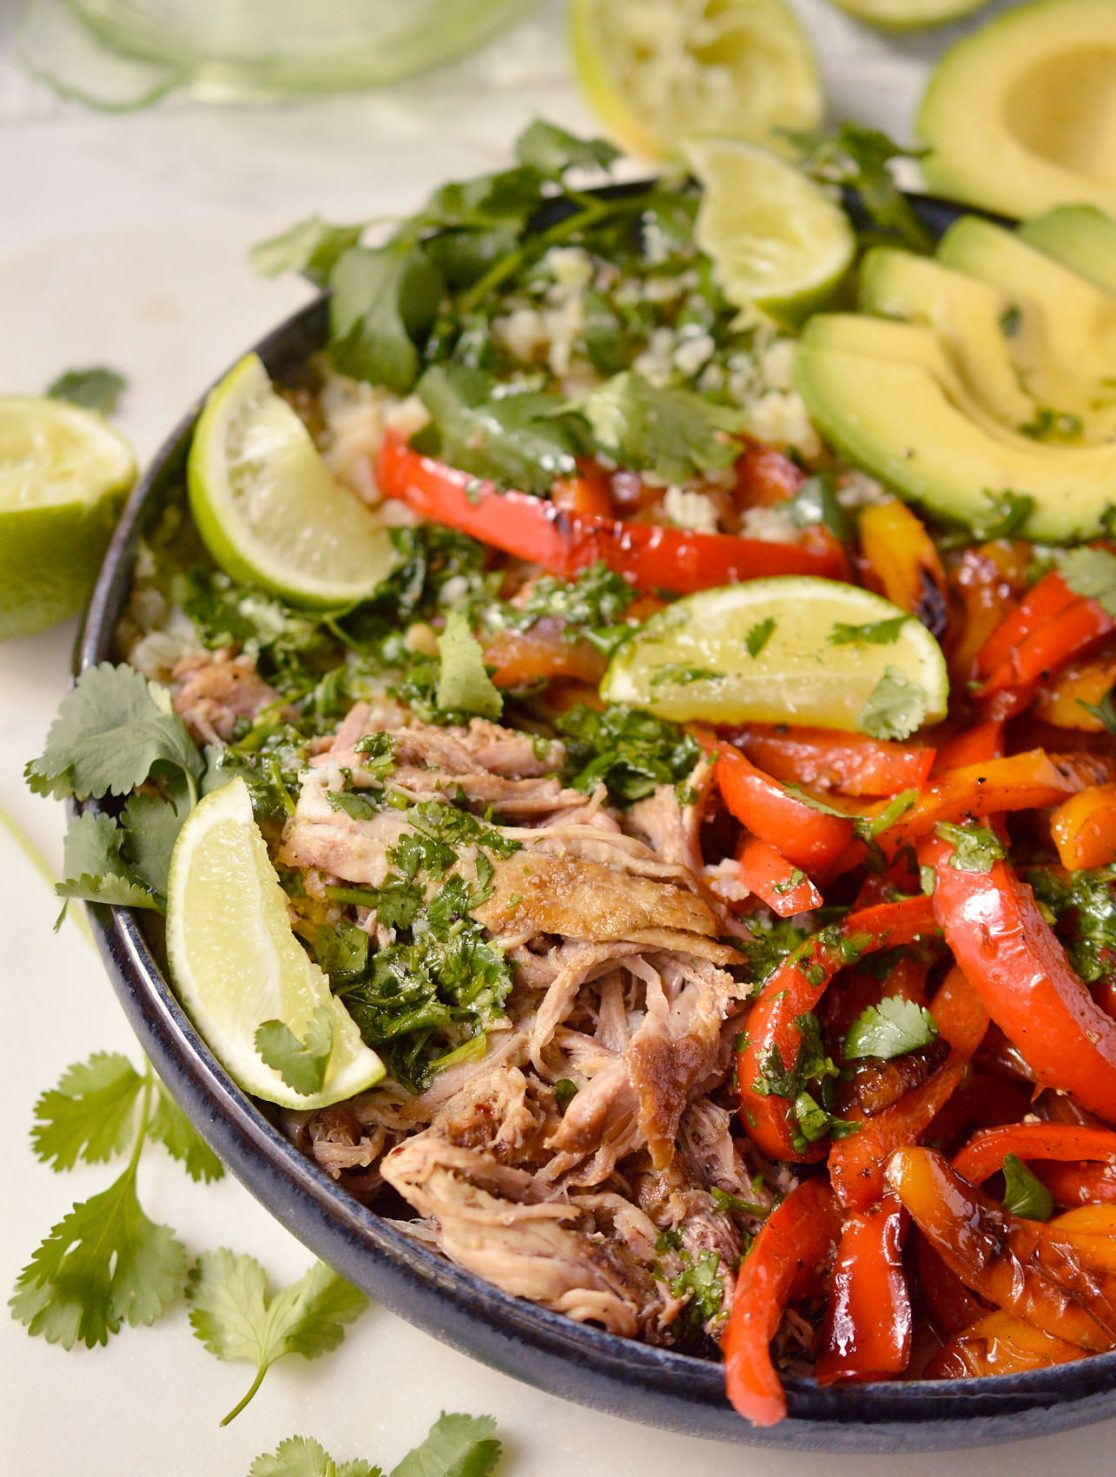 pork fajita bowl will sautéed peppers